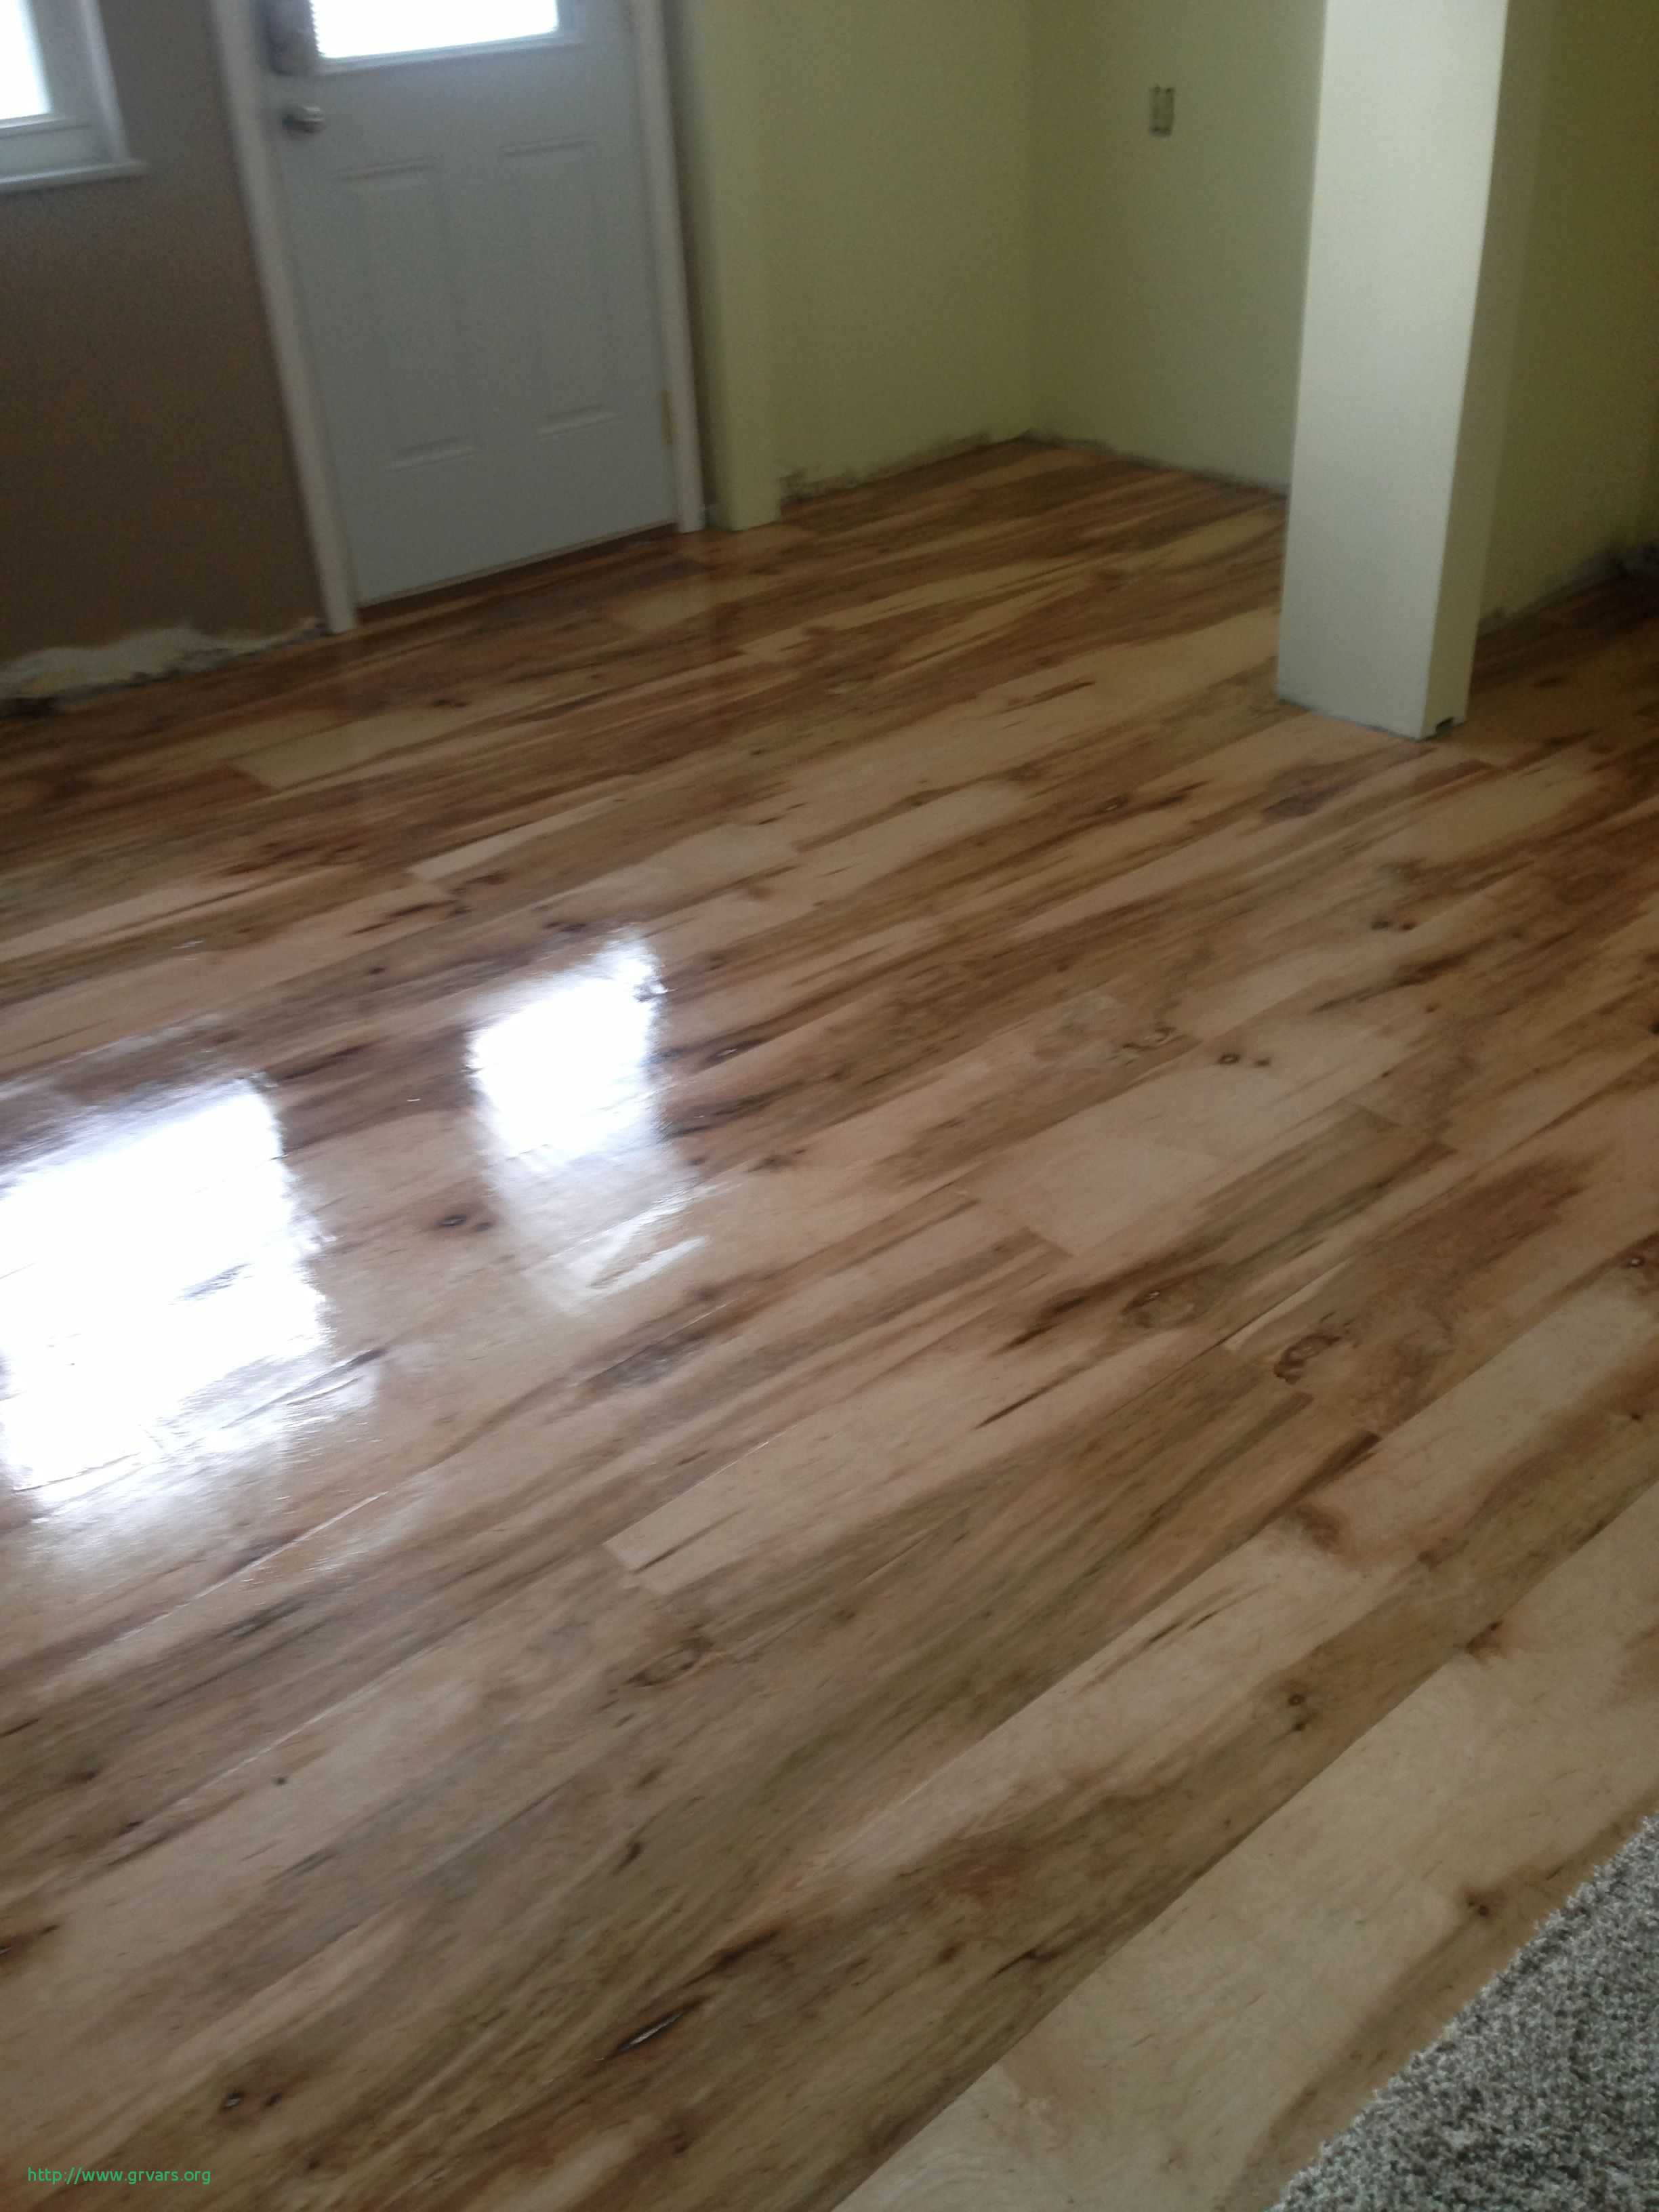 wholesale hardwood flooring online of flooring stores in tampa a‰lagant engaging discount hardwood flooring with flooring stores in tampa a‰lagant engaging discount hardwood flooring 5 where to buy inspirational 0d